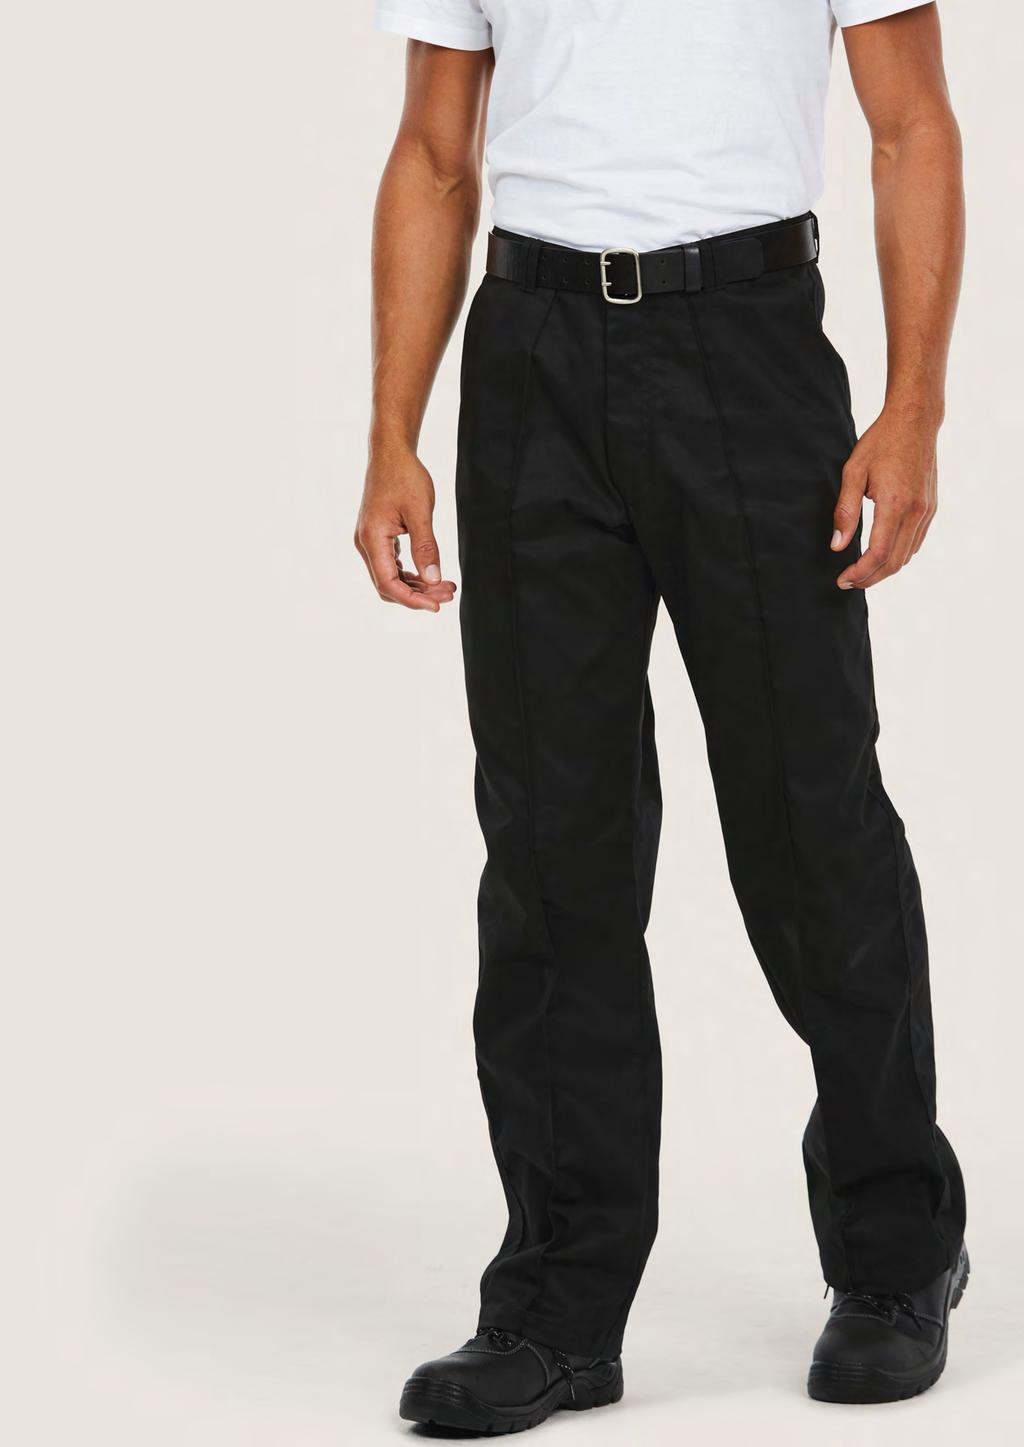 TROUSERS UC901 UNISEX WORKWEAR TROUSER 245 60 25/5 65% Polyester 35% Cotton Fabric: 245 /7 oz Flat front with sewn-in front crease Two Front Pockets Rear buttoned back pocket Metal rivet button